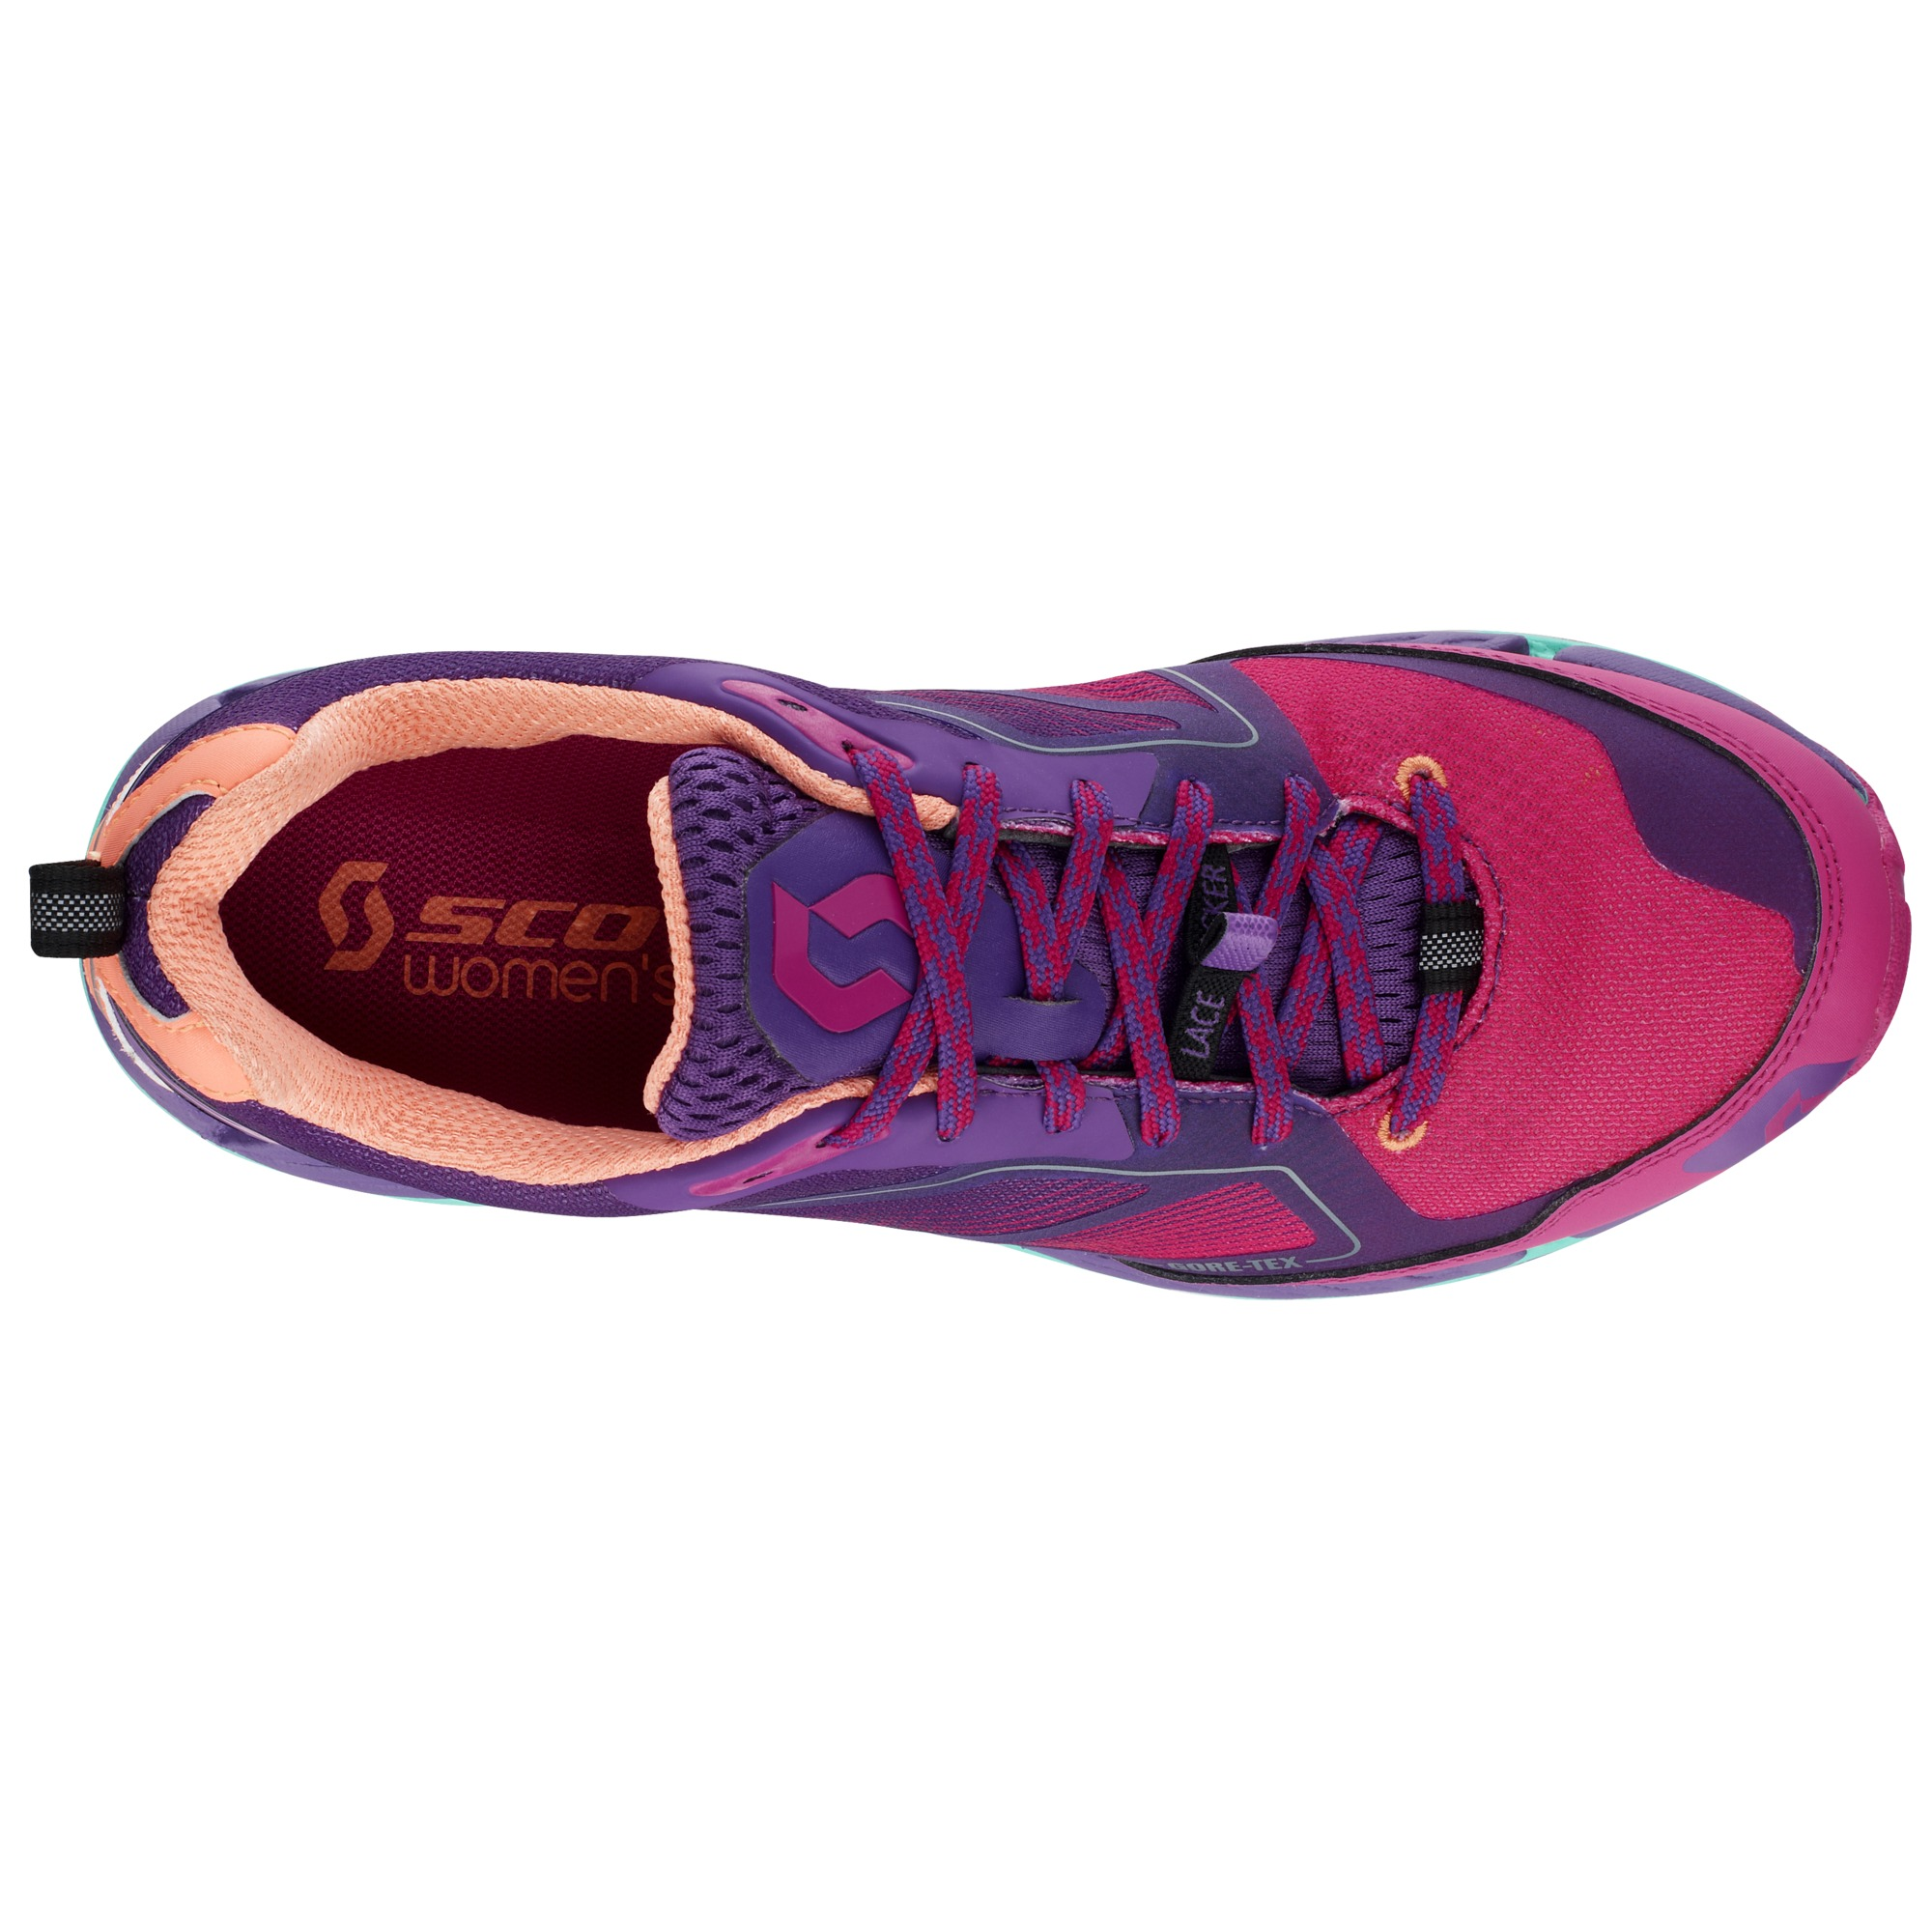 SCOTT T2 Kinabalu GORE-TEX® 2.0 Women's Shoe